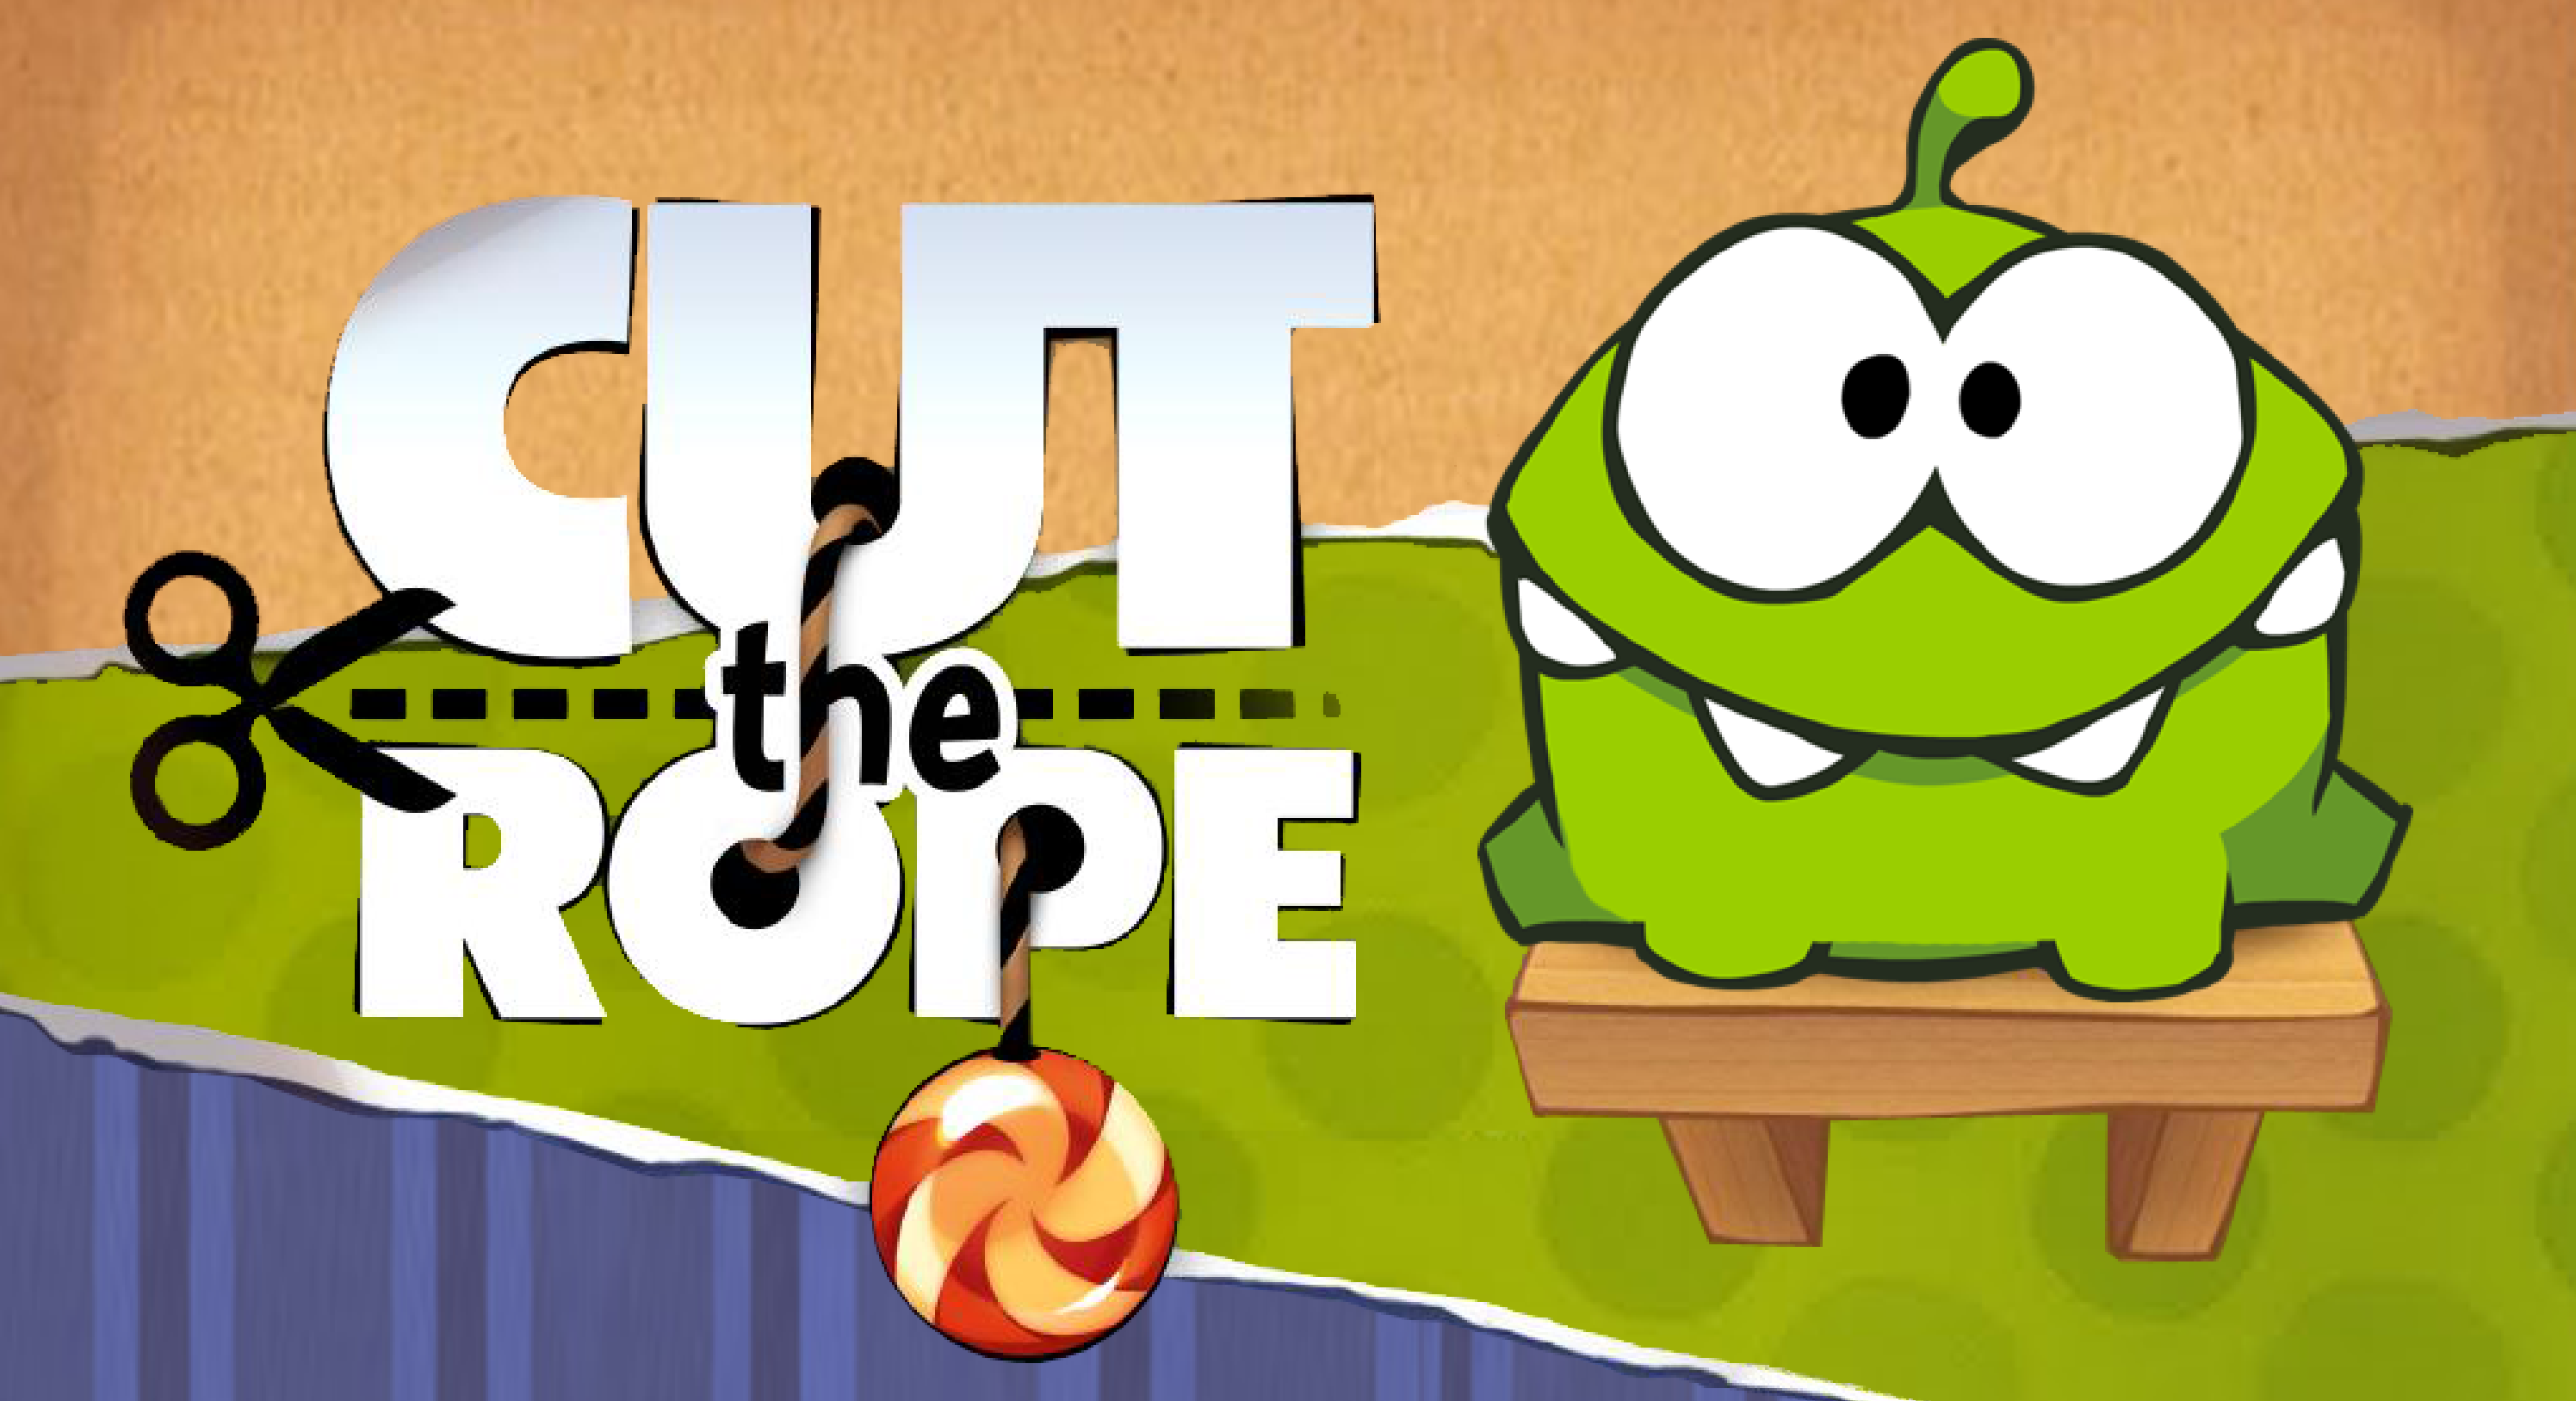 cut of the rope game